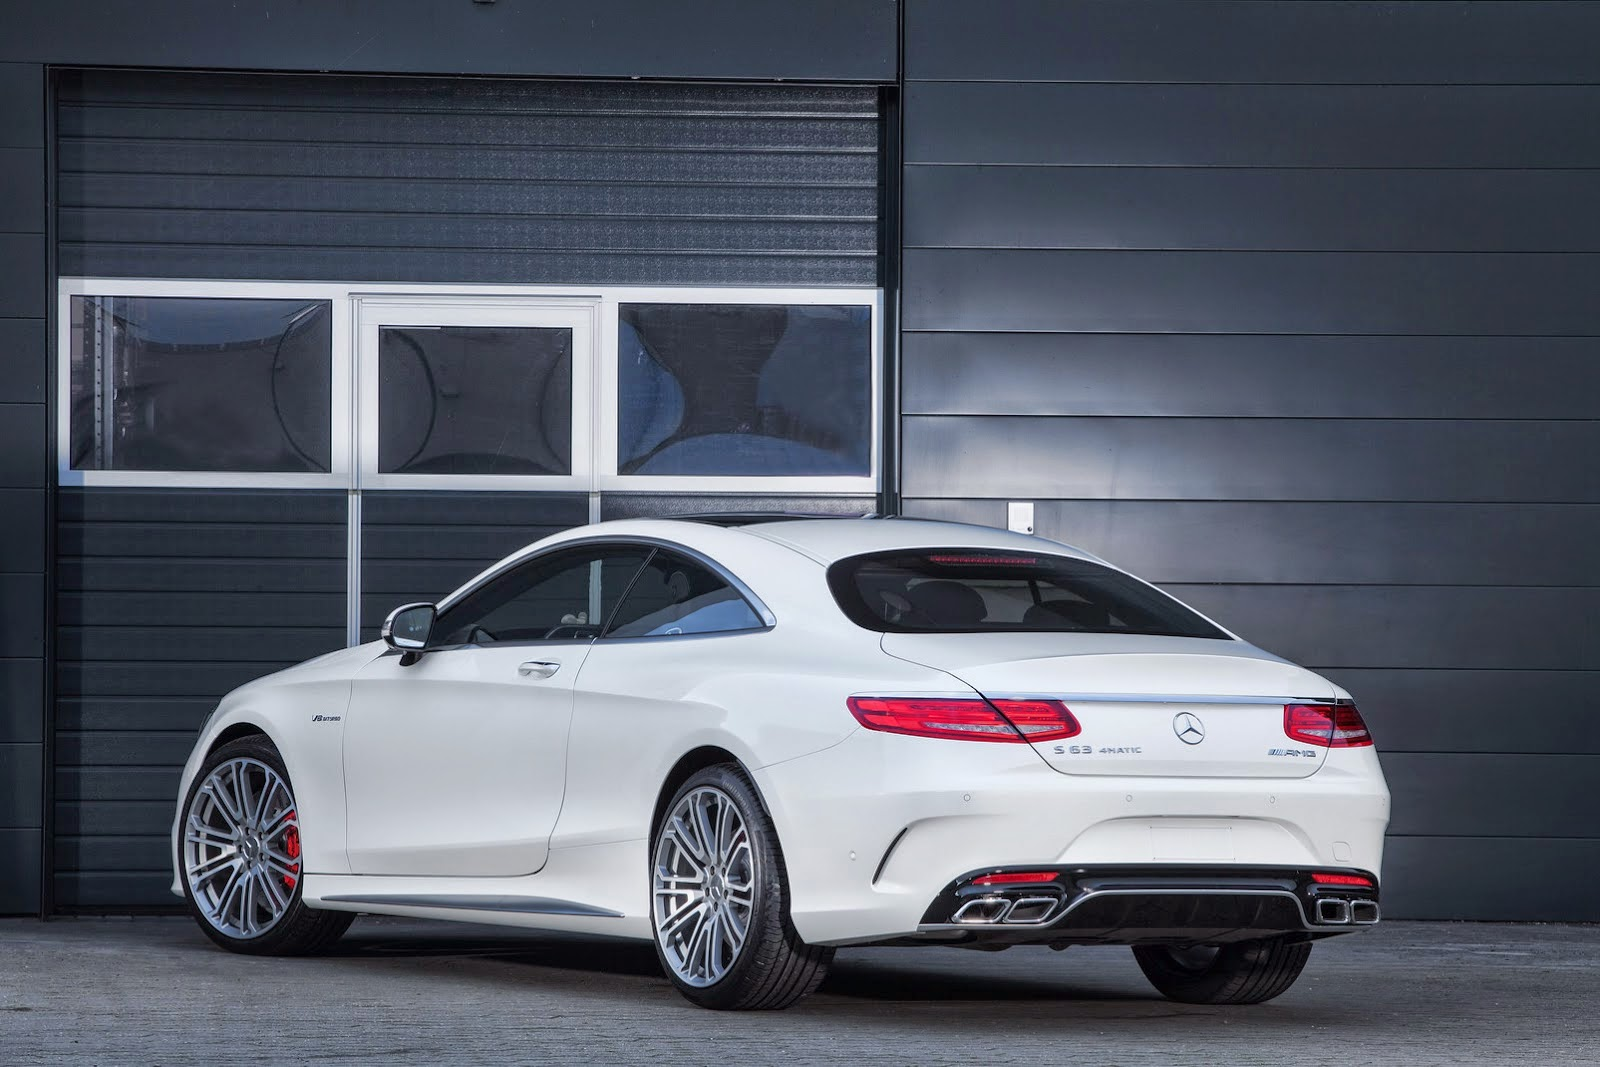 IMSA Mercedes-Benz S63 AMG Coupe